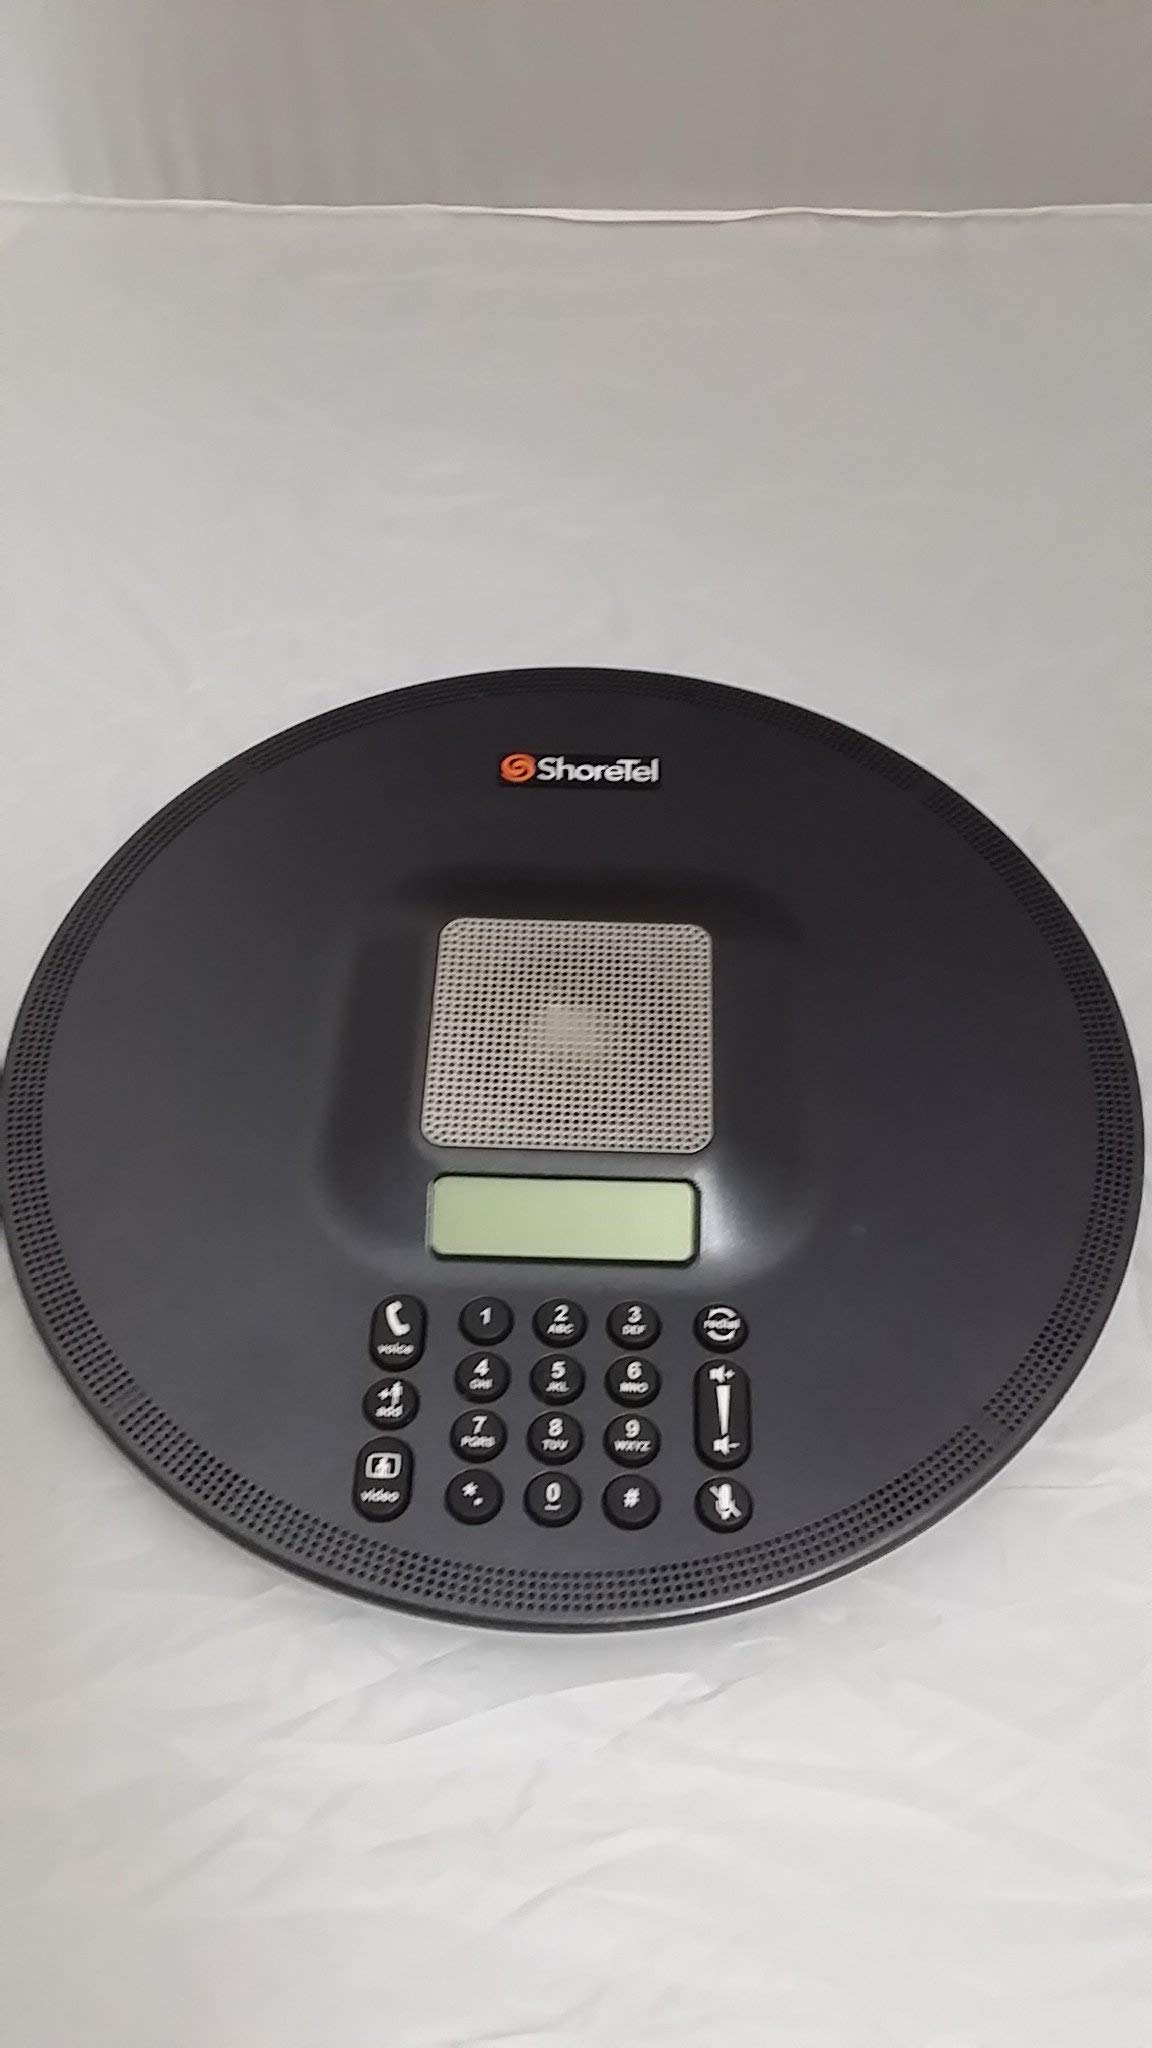 ShoreTel ShorePhone IP 8000 - conference VoIP phone (Renewed) by ShoreTel